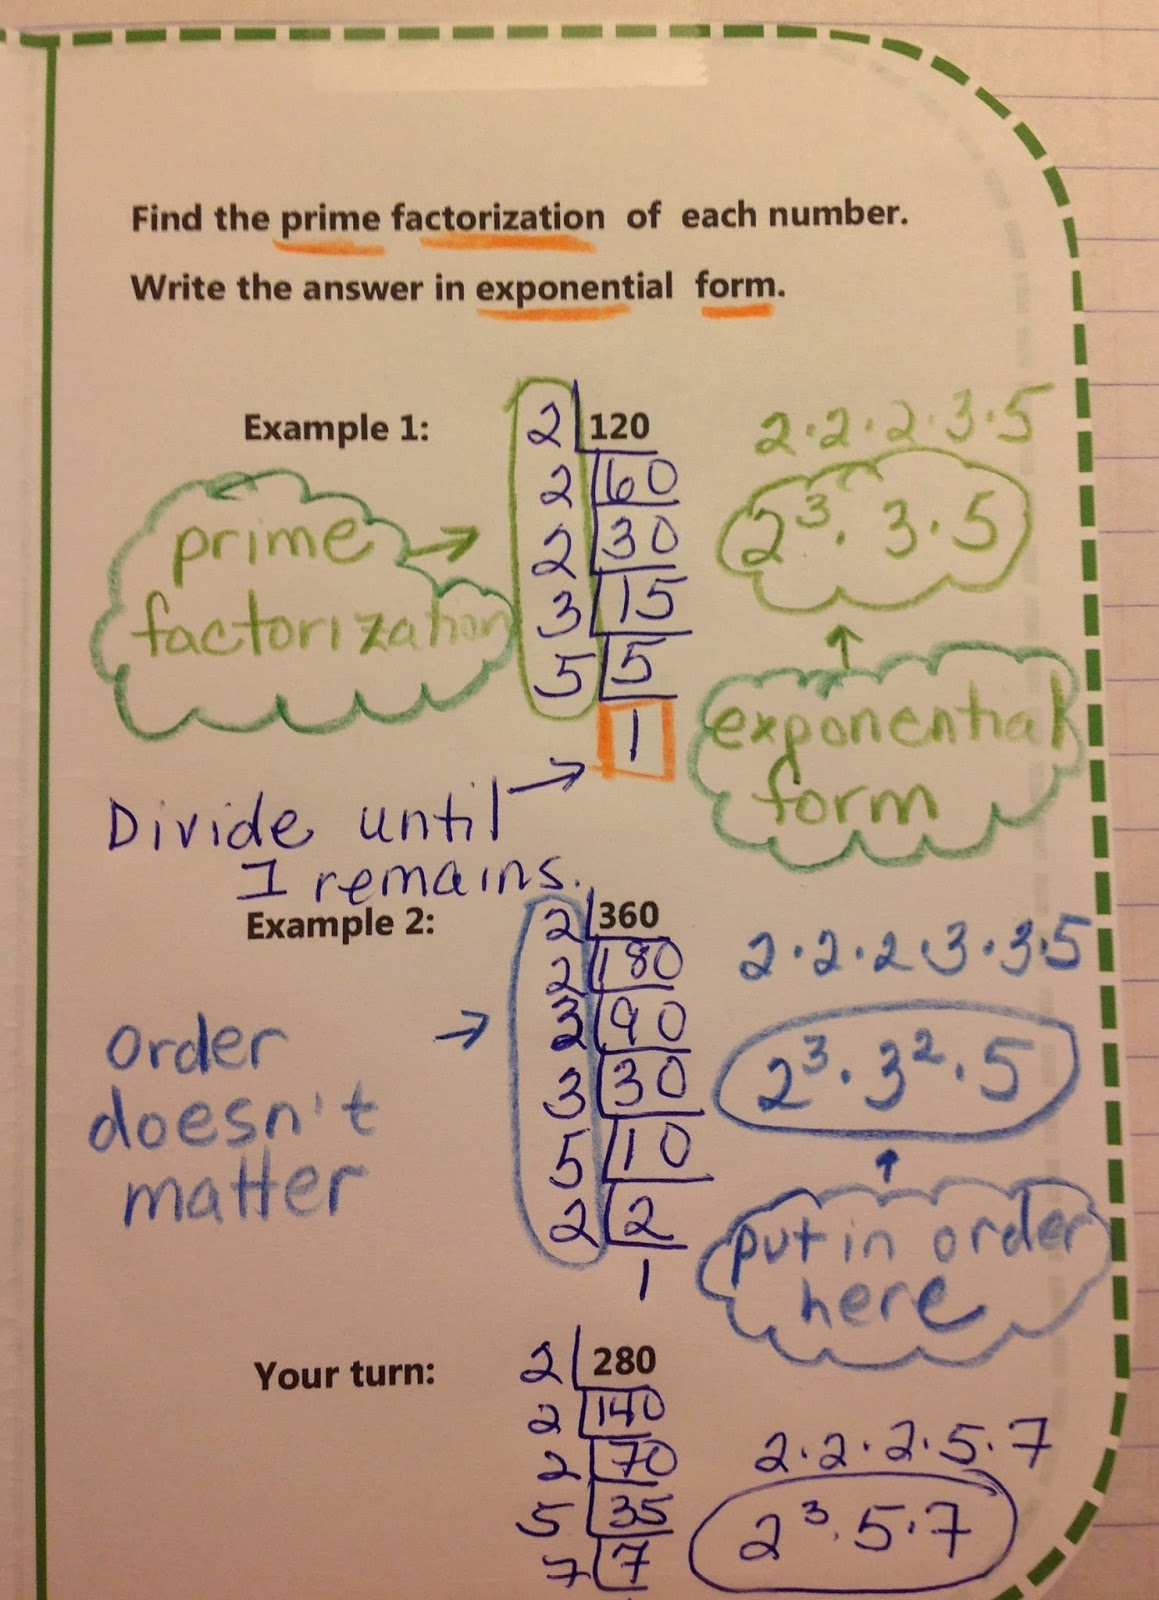 Worksheet How To Do Division For Kids to do division for kids scalien how scalien